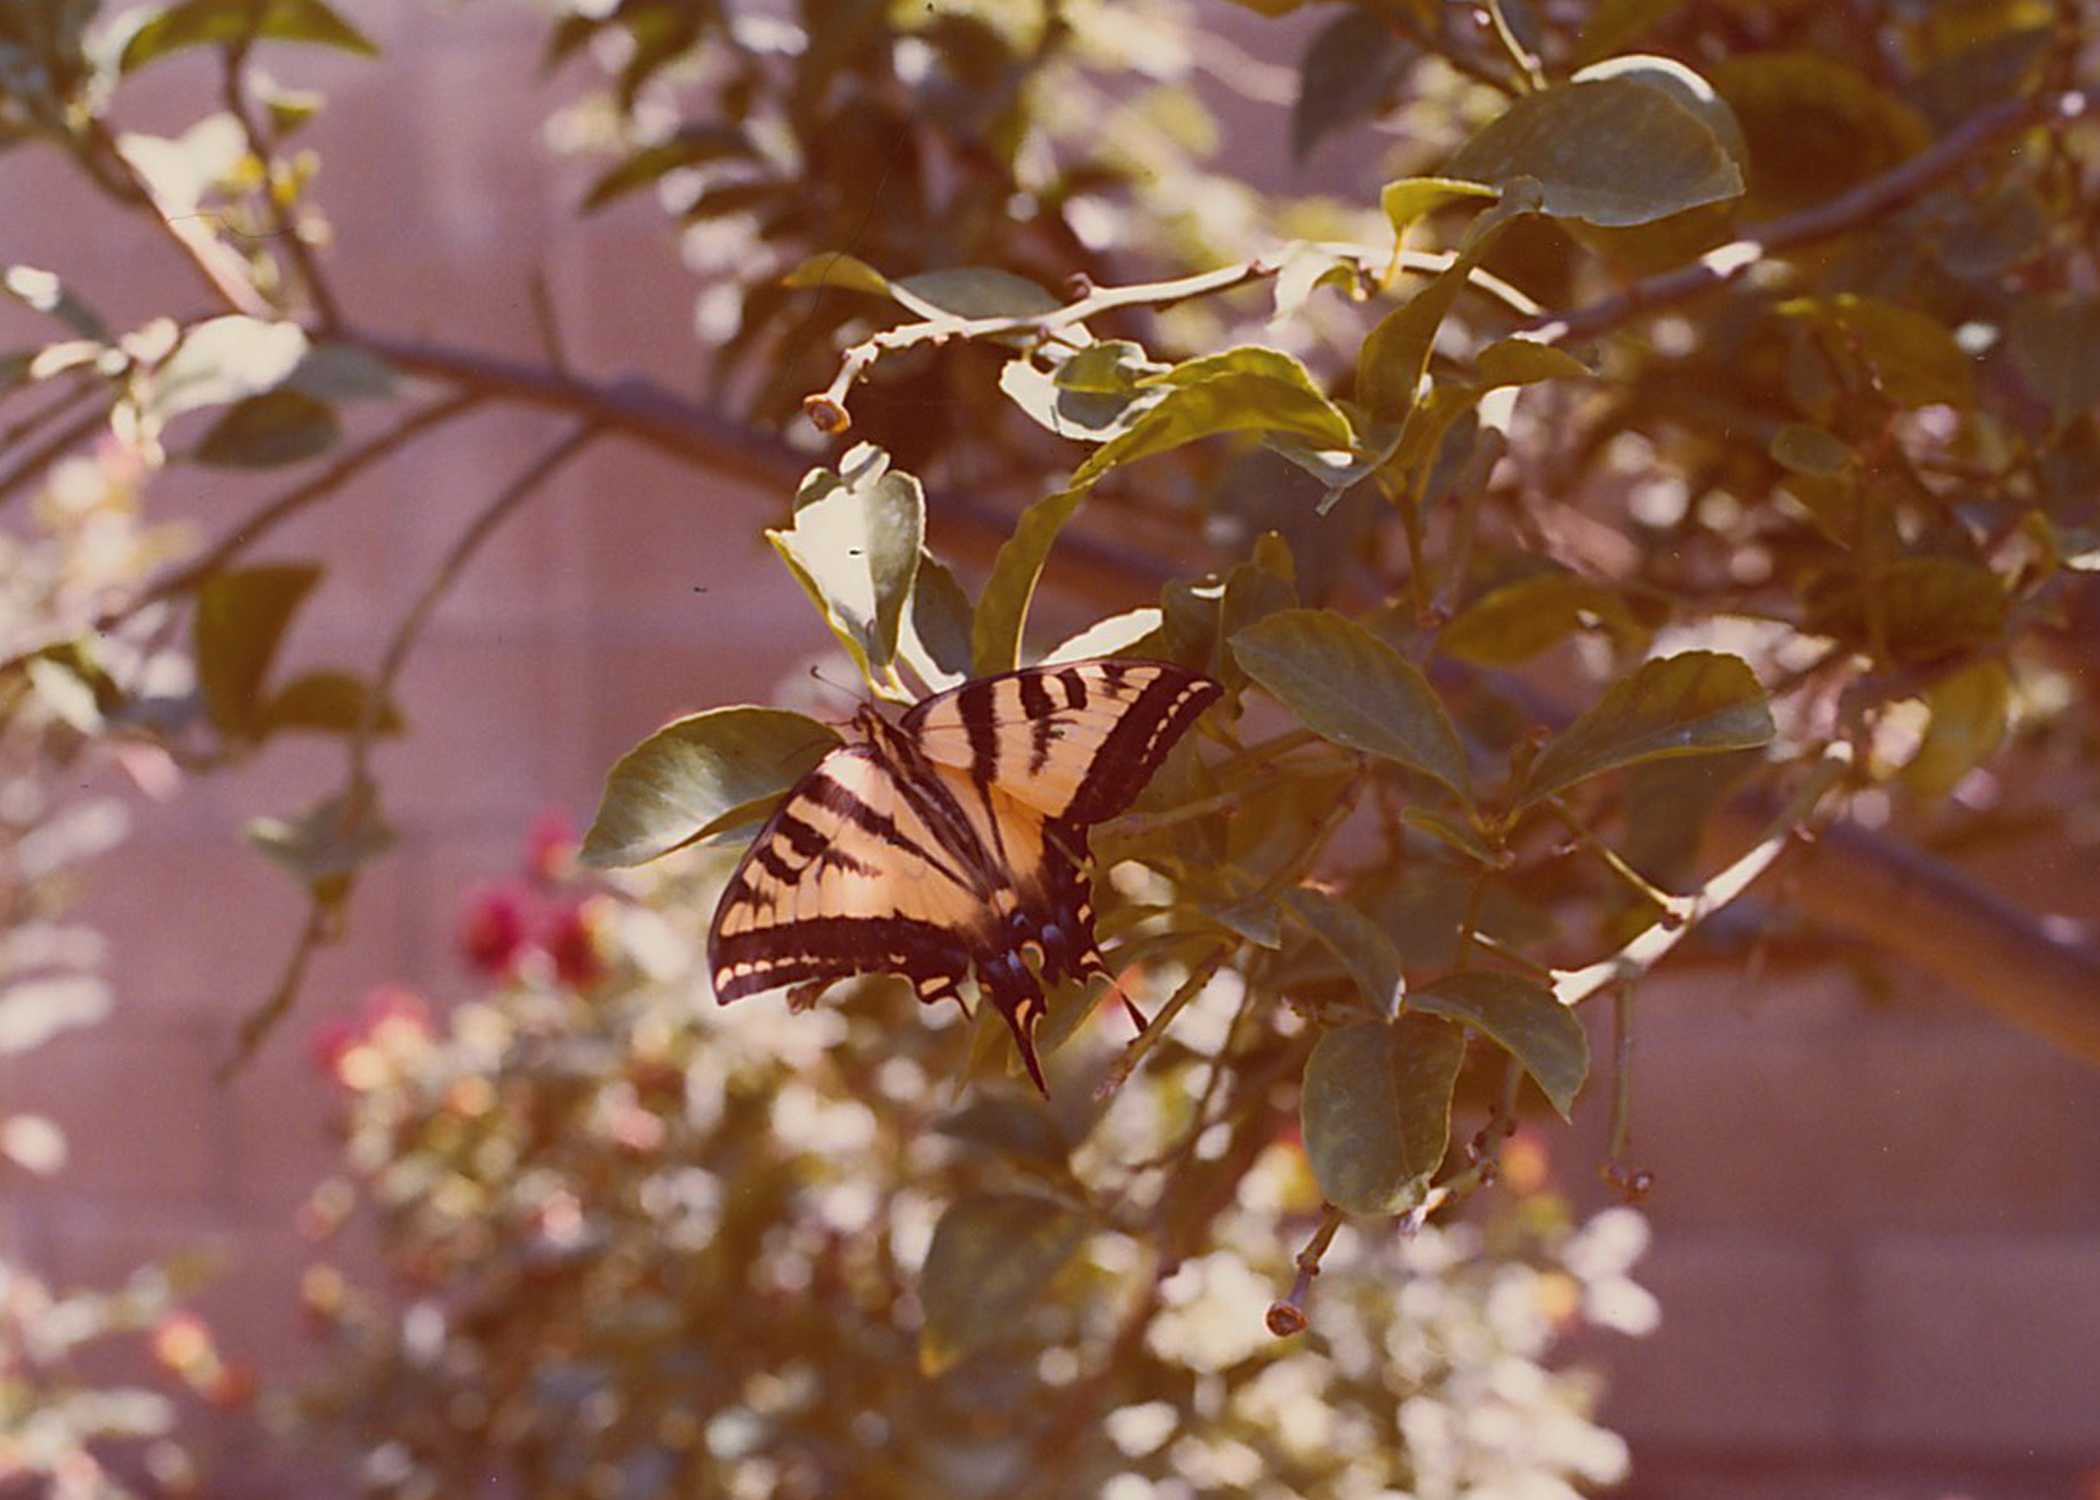 A photo of a beautiful butterfly that was taken in their backyard.